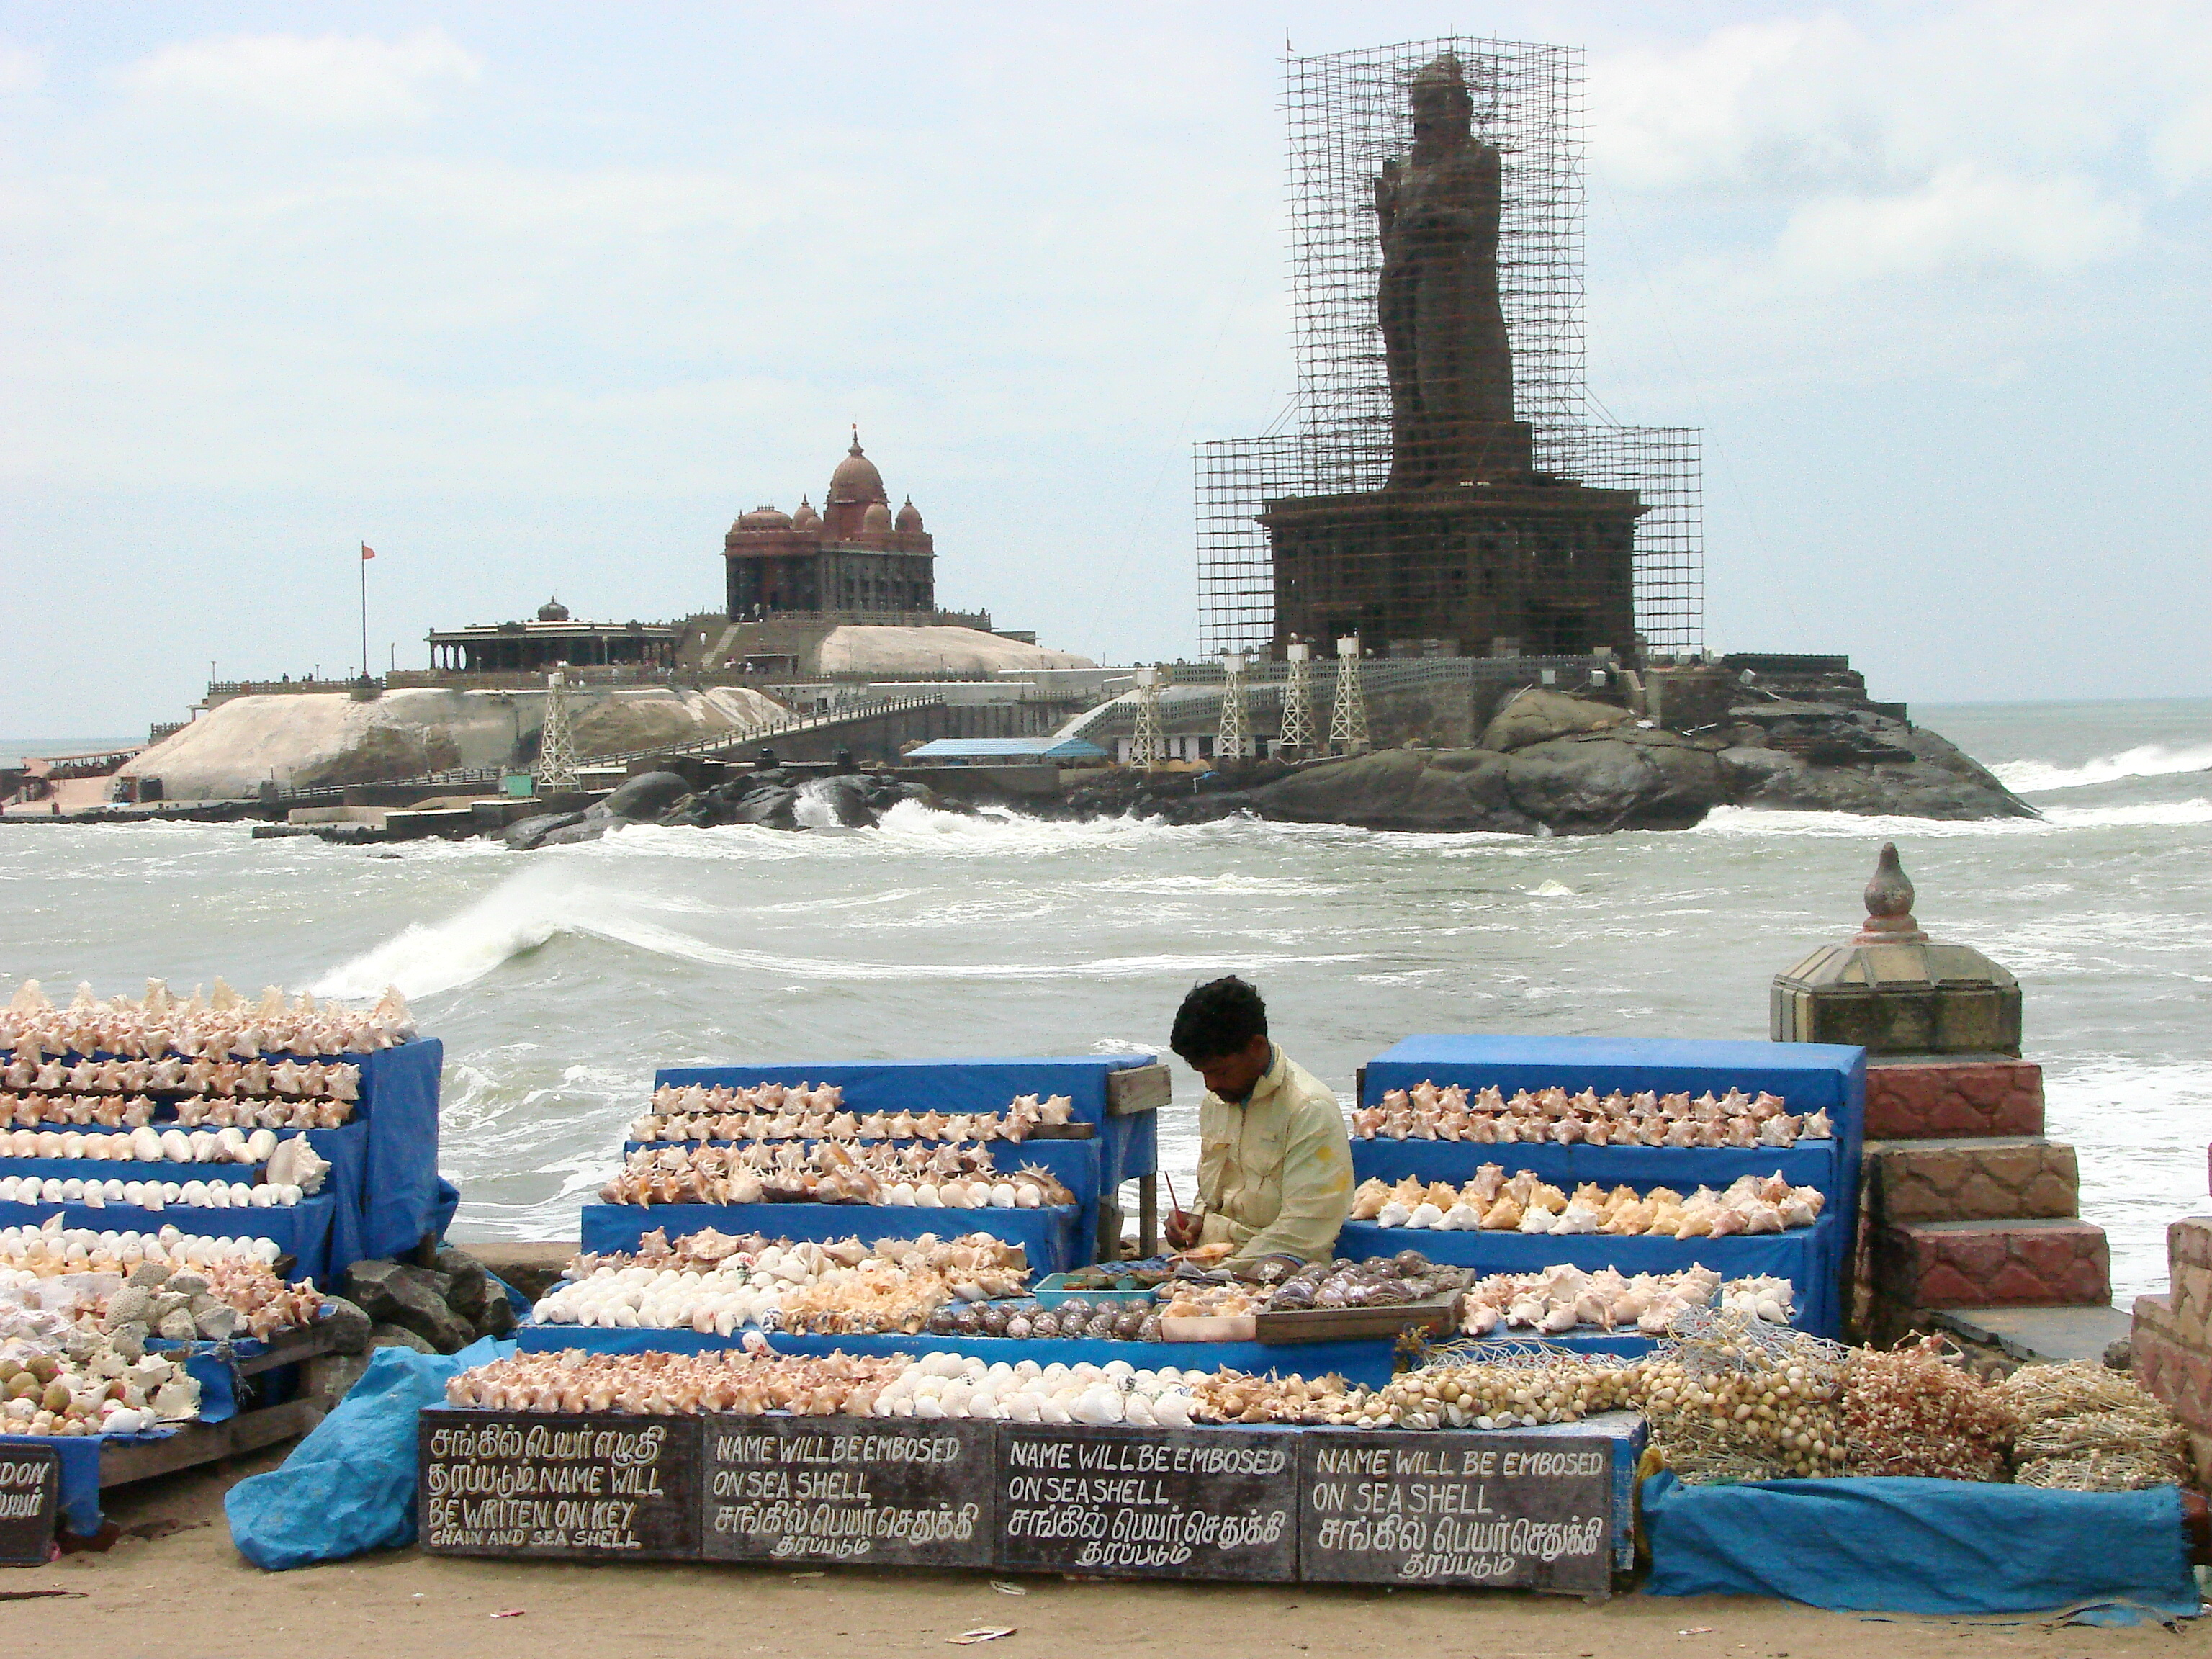 Kanyakumari India  City pictures : Description Vendor at Seafront Kanyakumari India